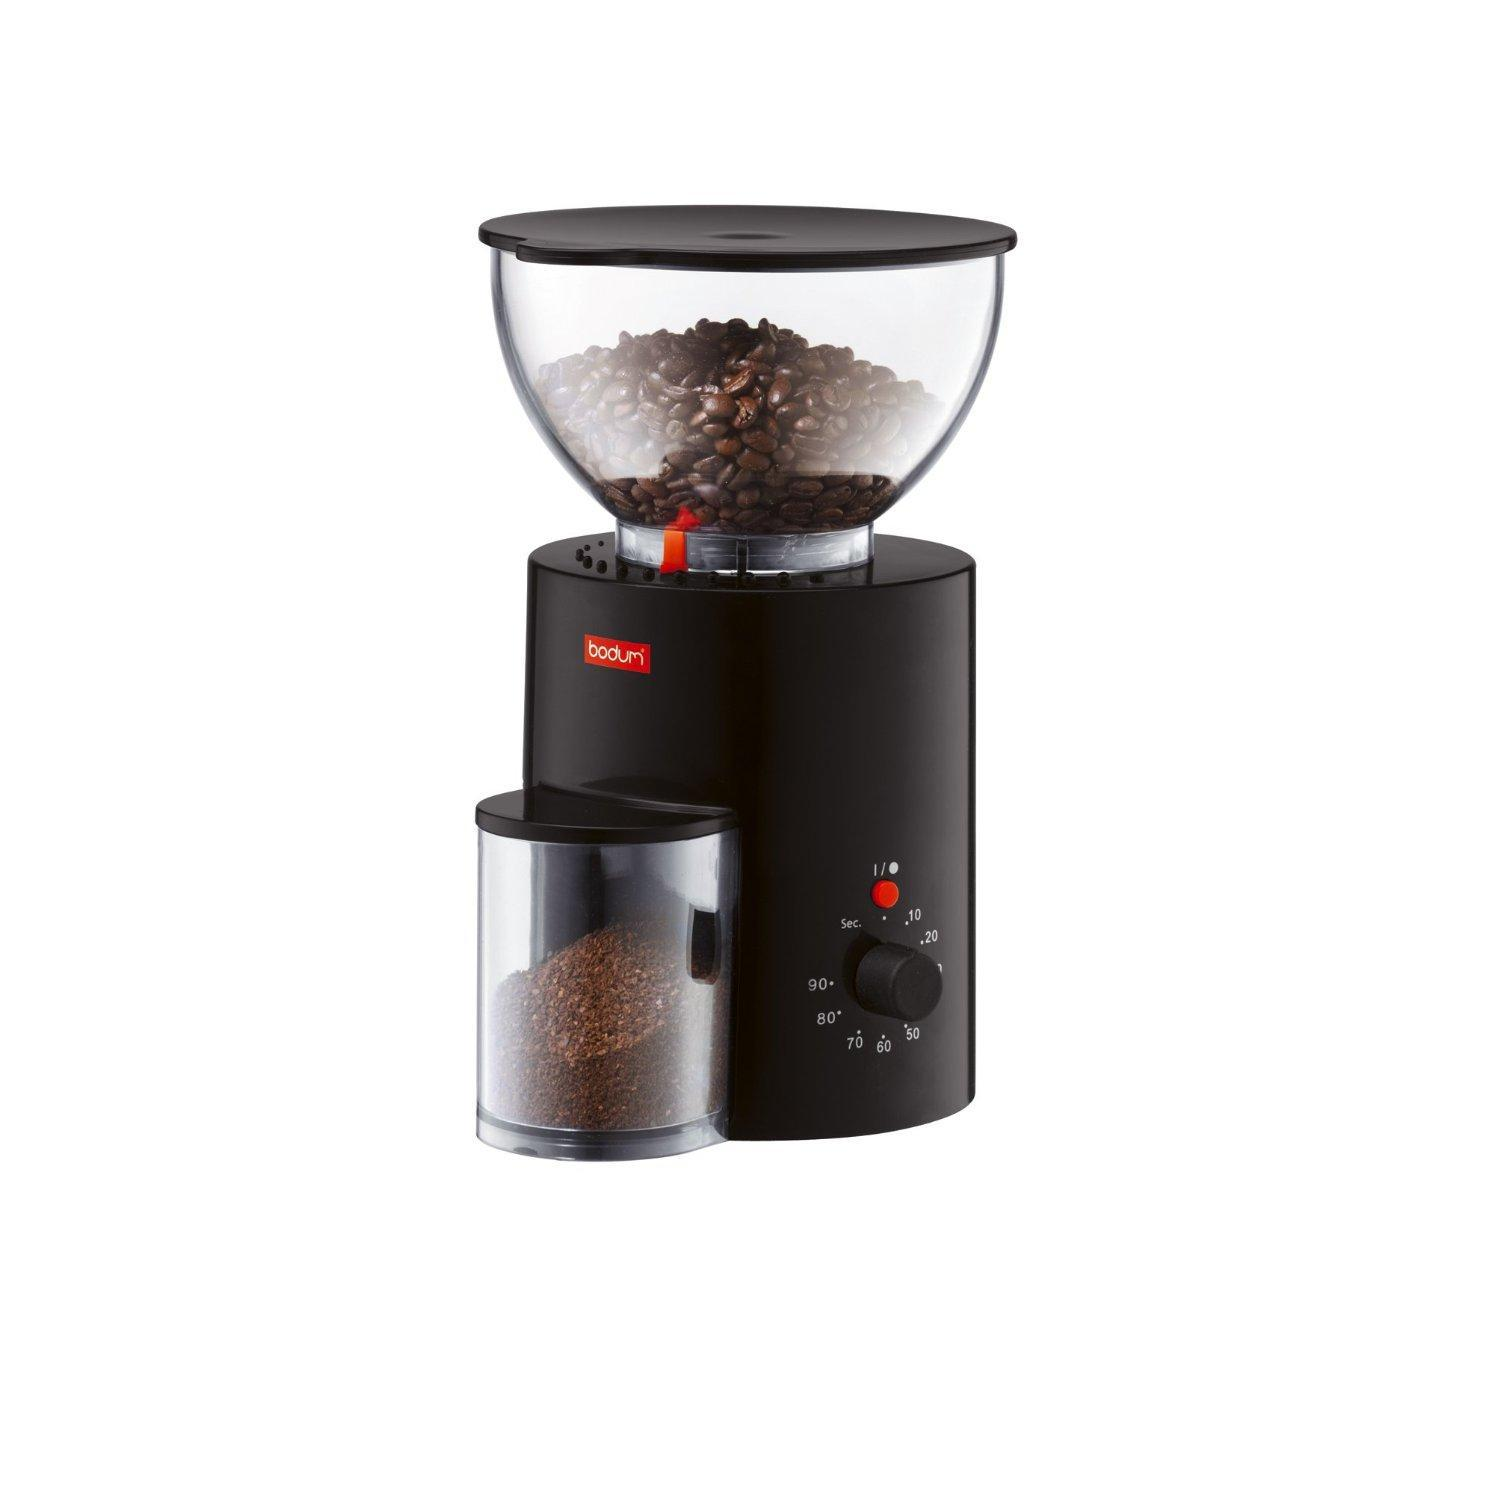 Delta High Living Coffee Maker With Grinder : Coffee Accessories Ottawa Shop Ma Cuisine